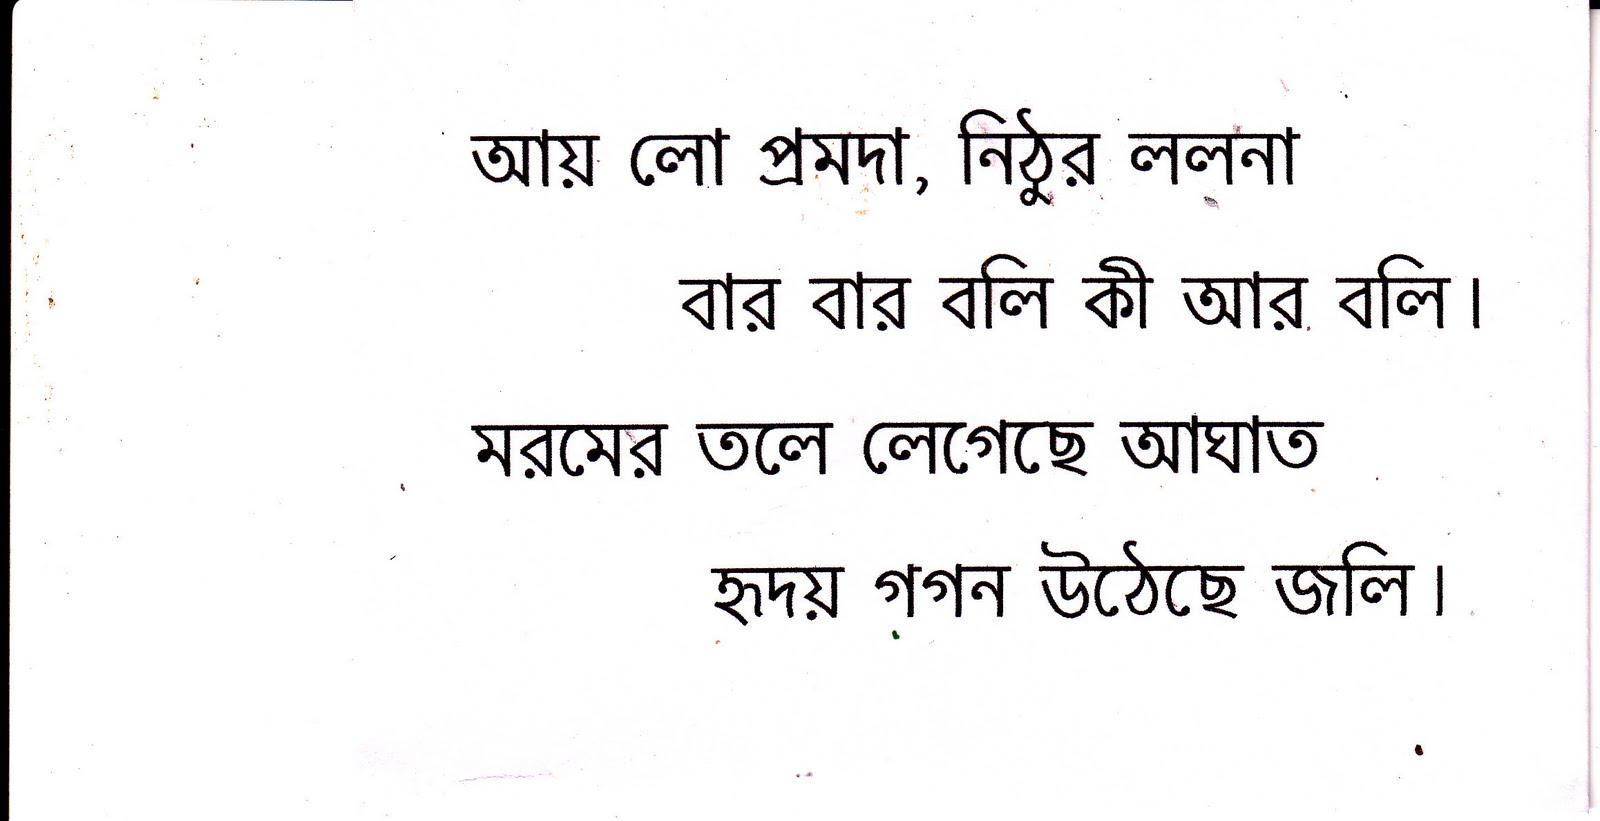 smaraka grantha  rabindranath began to write essays too at this stage he wrote three essays bhuban mohini pratibha abasar sarojini and dukhyosangini in 1876 in which he